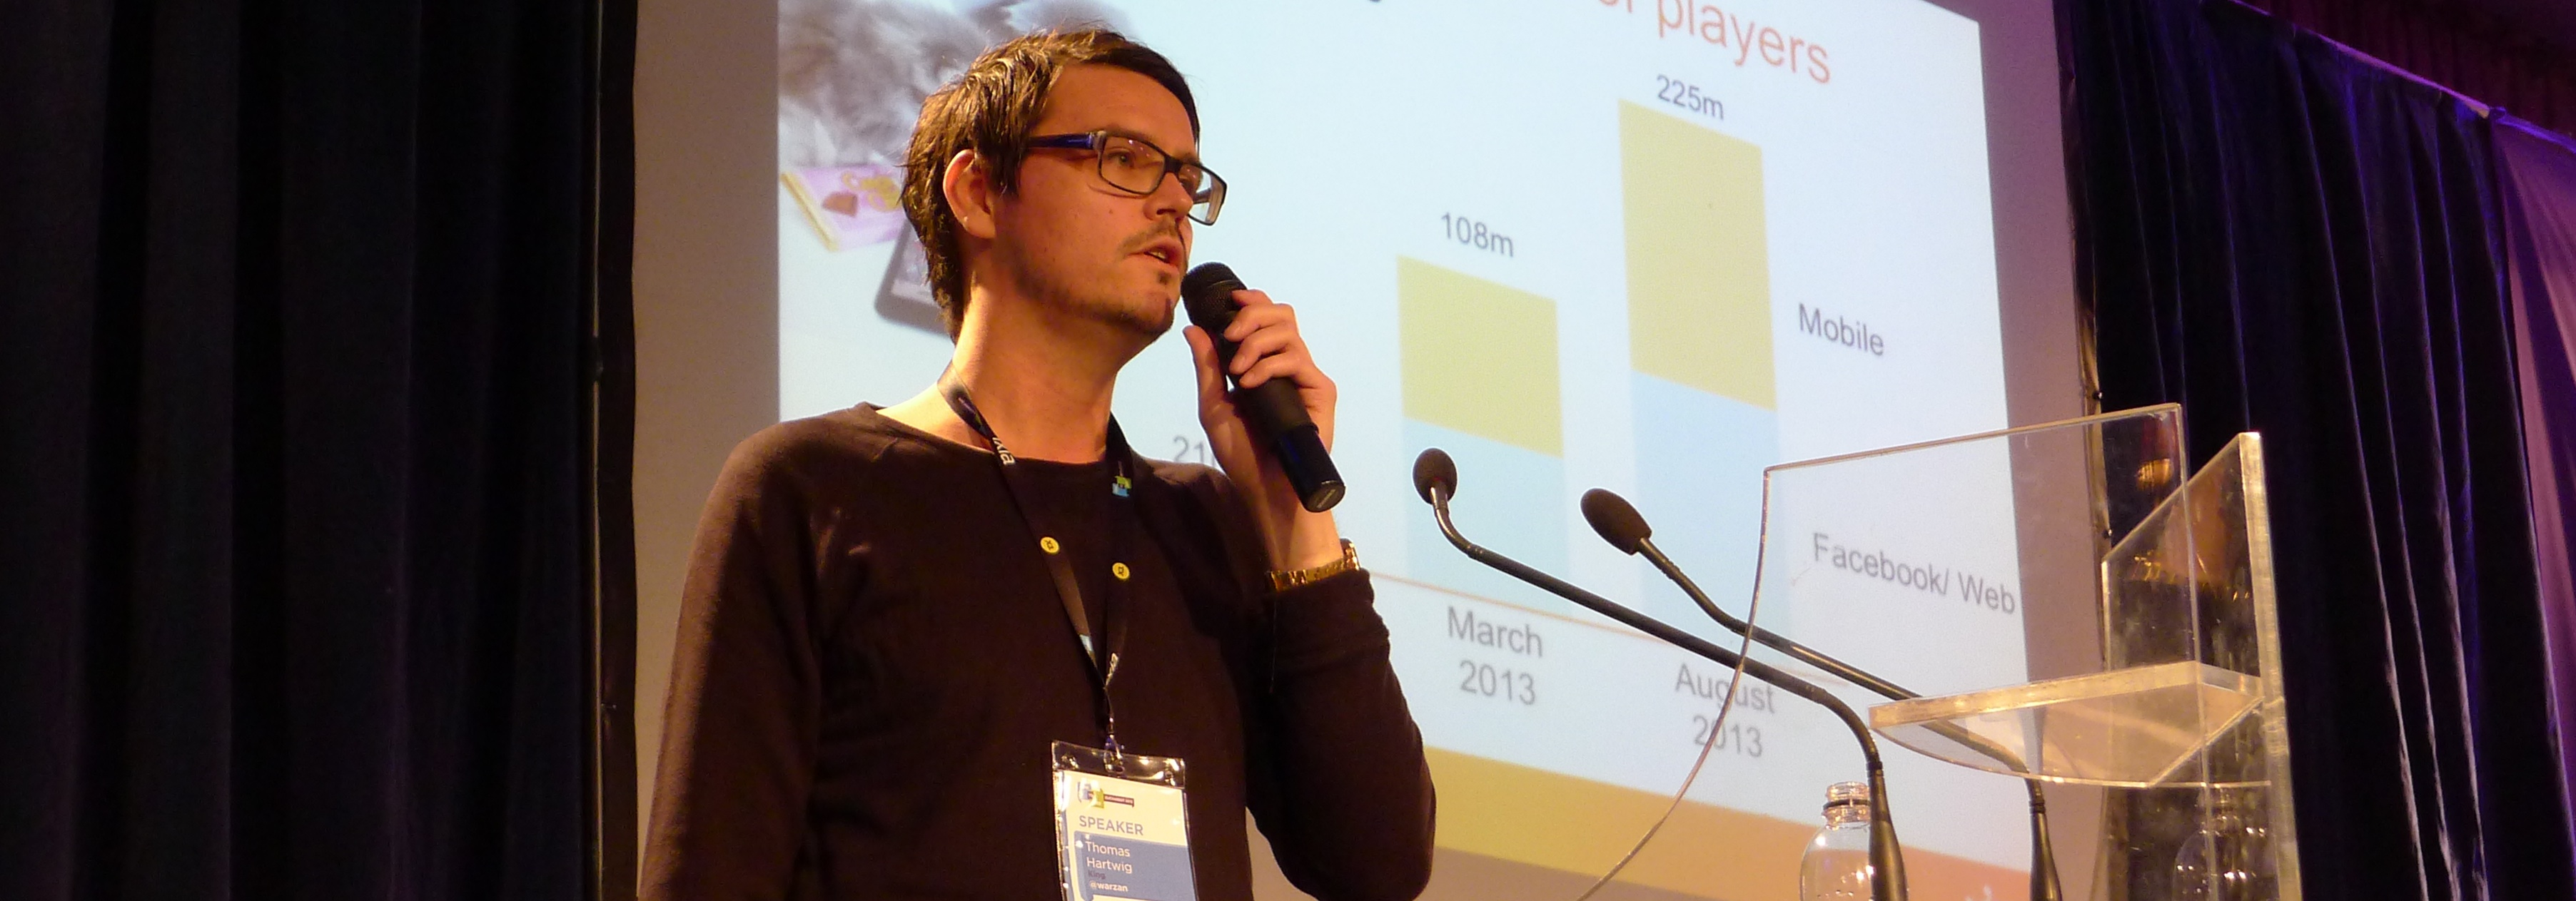 King's Thomas Hartwig on the Balancing Act for Free-to-Play Games